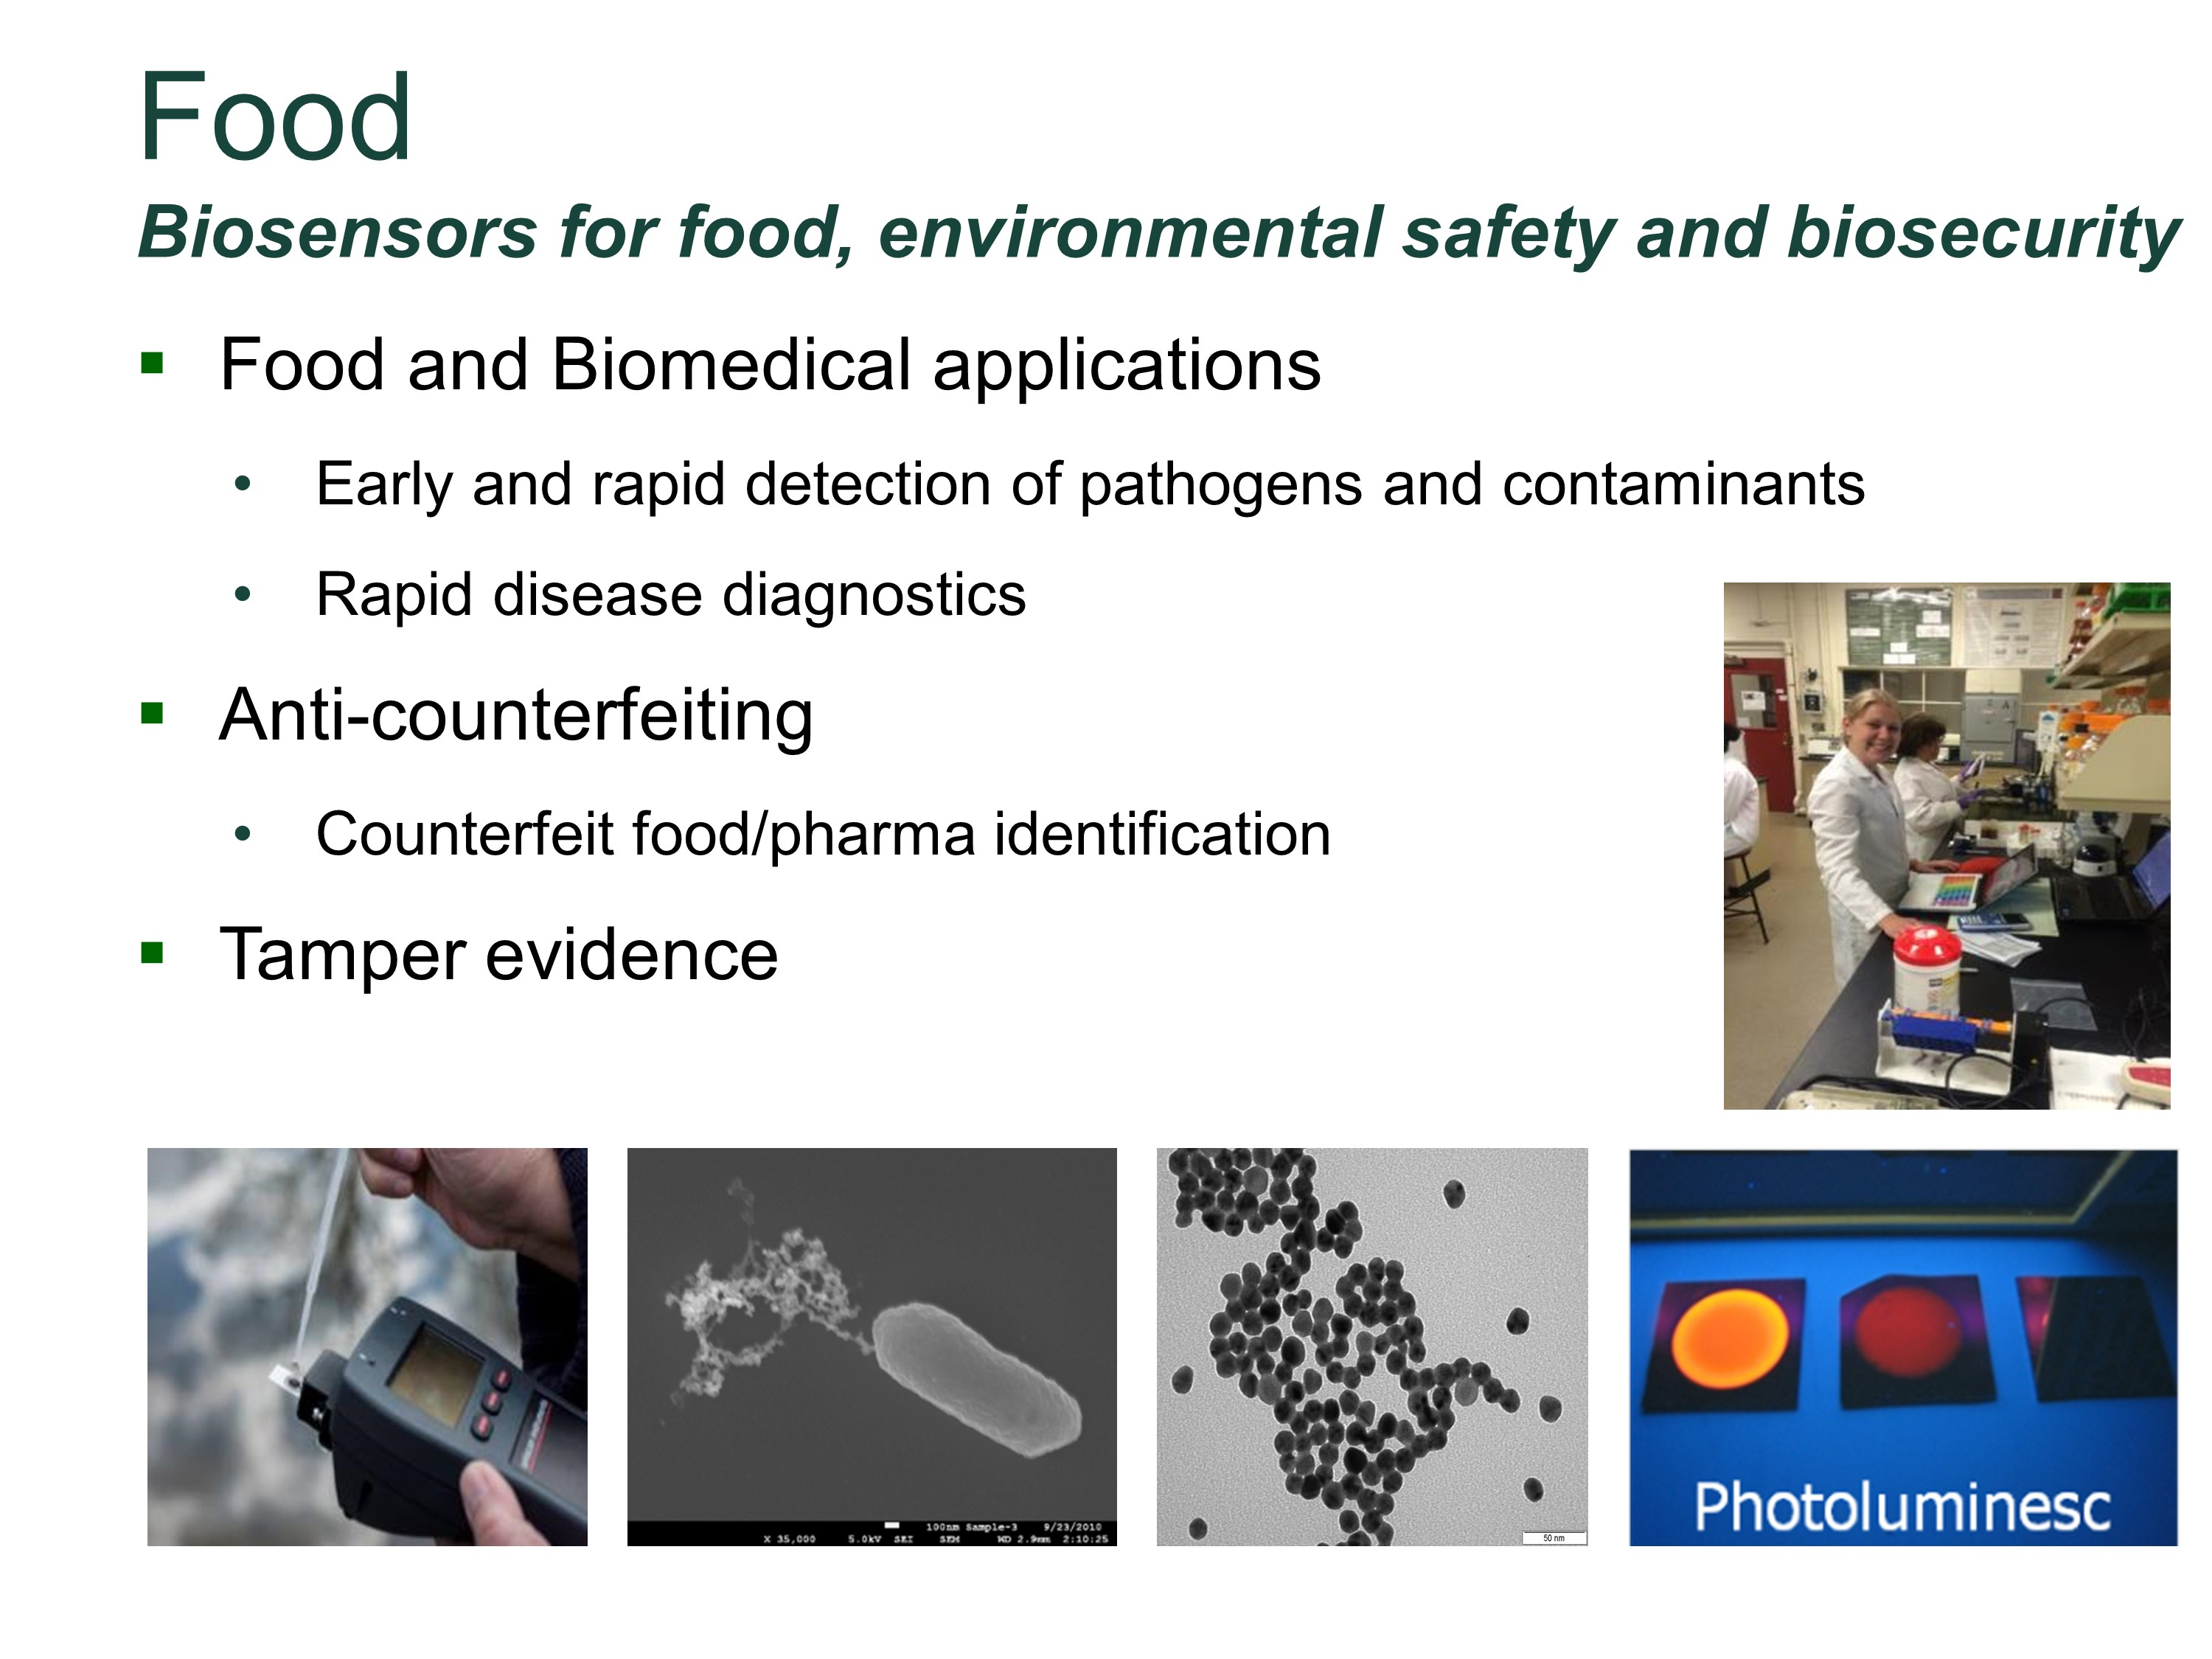 Biosensors for food, environmental safety and biosecurity